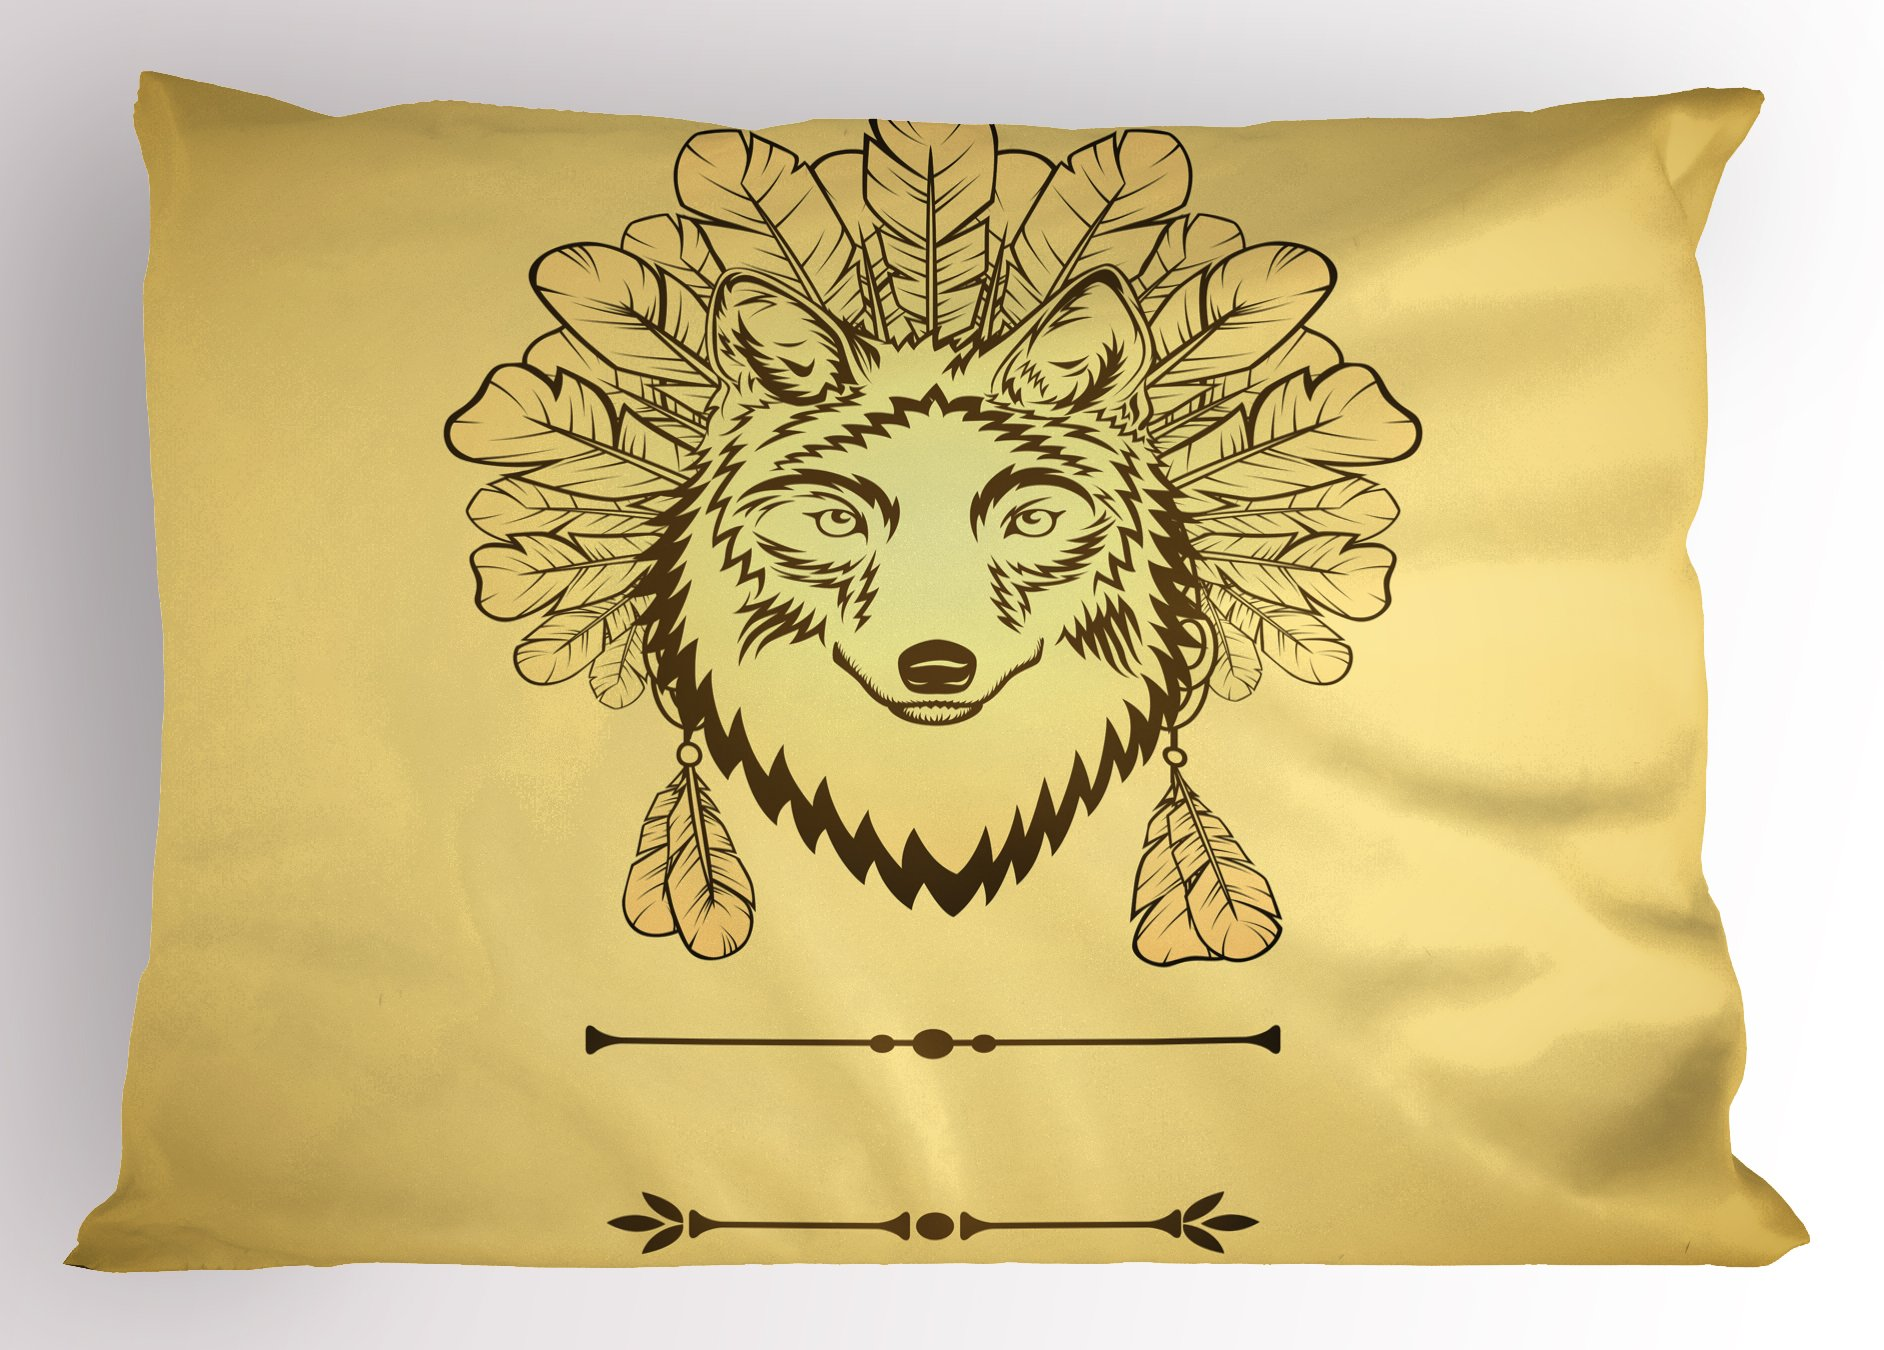 Lunarable Wolf Pillow Sham, Artistic Wolf Portrait with Feathers Totem Animal Ethnicity Spirituality, Decorative Standard King Size Printed Pillowcase, 36 X 20 inches, Yellow and Green Brown